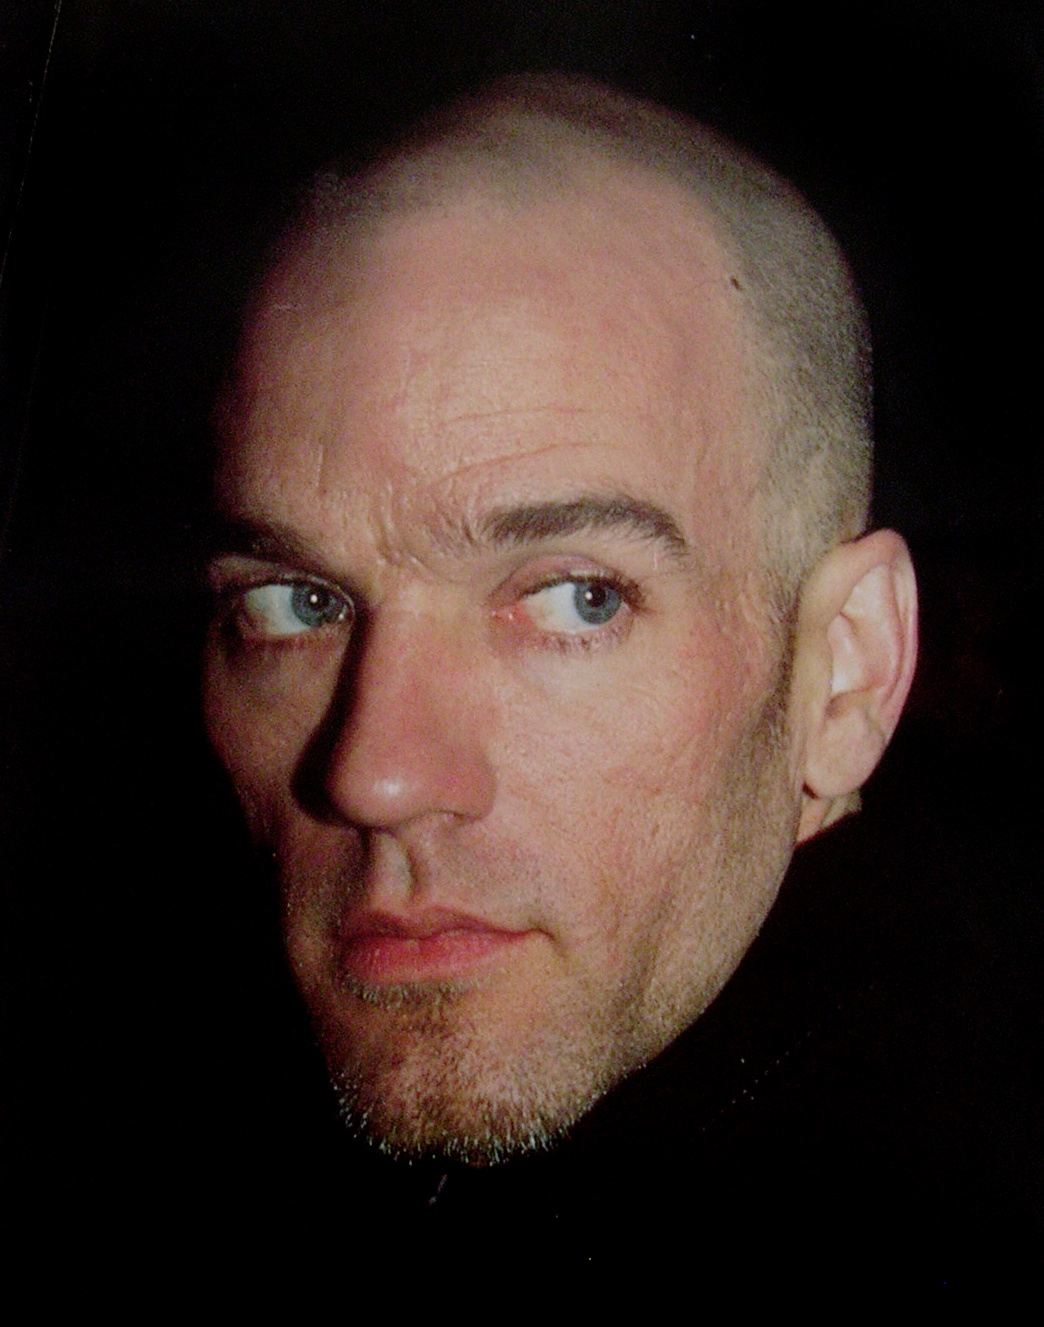 michael stipe in the sunmichael stipe net worth, michael stipe 2015, michael stipe twitter, michael stipe donald trump, michael stipe house, michael stipe interview, michael stipe tumblr, michael stipe in the sun, michael stipe pete and pete, michael stipe quotes, michael stipe thomas dozol, michael stipe tour, michael stipe instagram, michael stipe wife, michael stipe losing my religion, michael stipe art, michael stipe biography, michael stipe solo album, michael stipe rocky horror